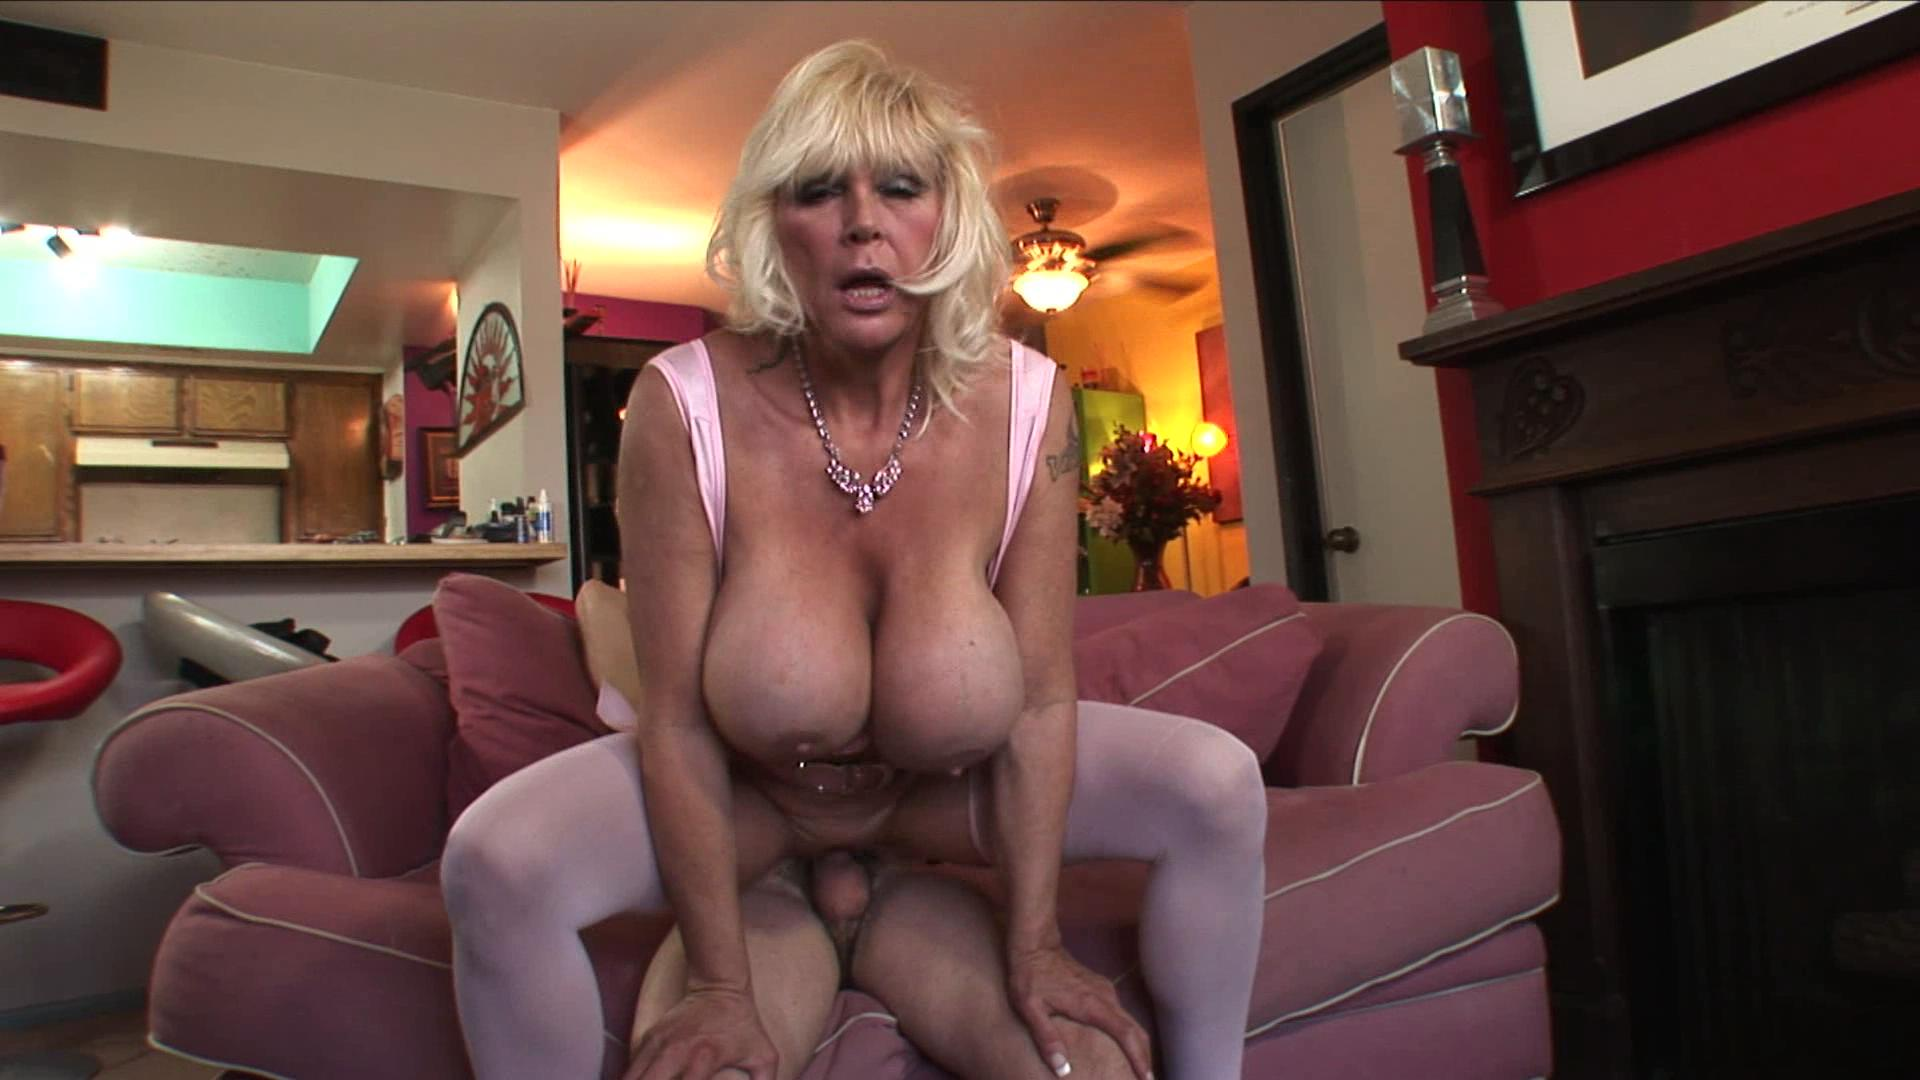 Horny Grannies Love To Fuck 2 xvideos150233